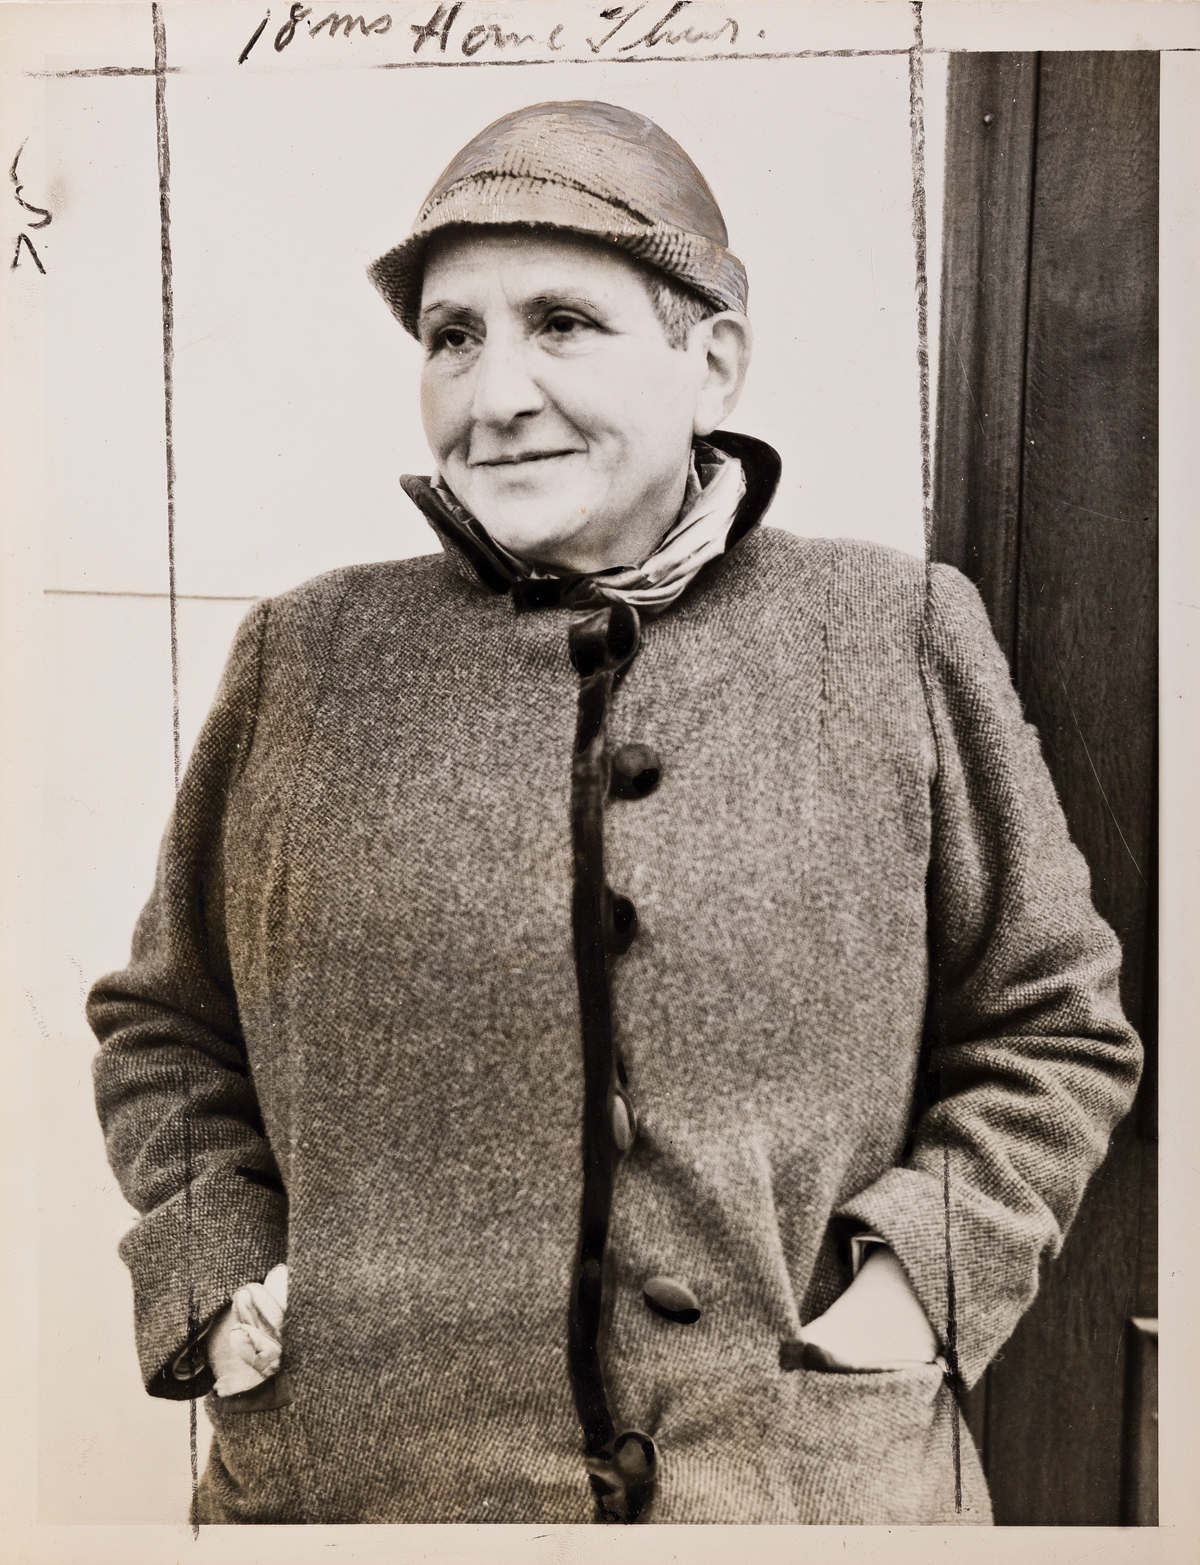 (GERTRUDE STEIN 1874-1946) A collection of 5 press prints depicting the early LGBTQ+ pioneer and literary figure Gertrude Stein, upon h